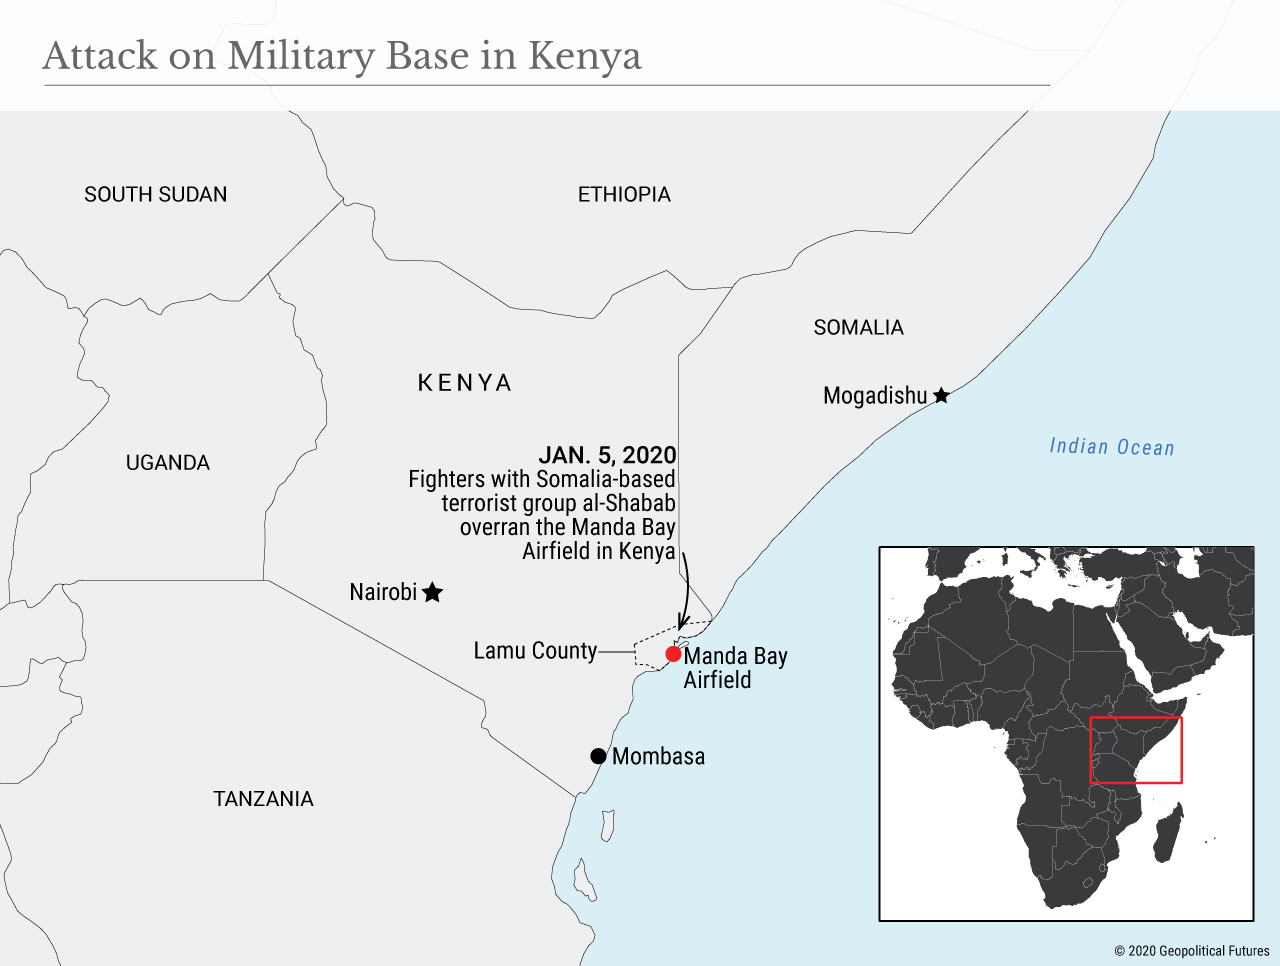 Attack on Military Base in Kenya